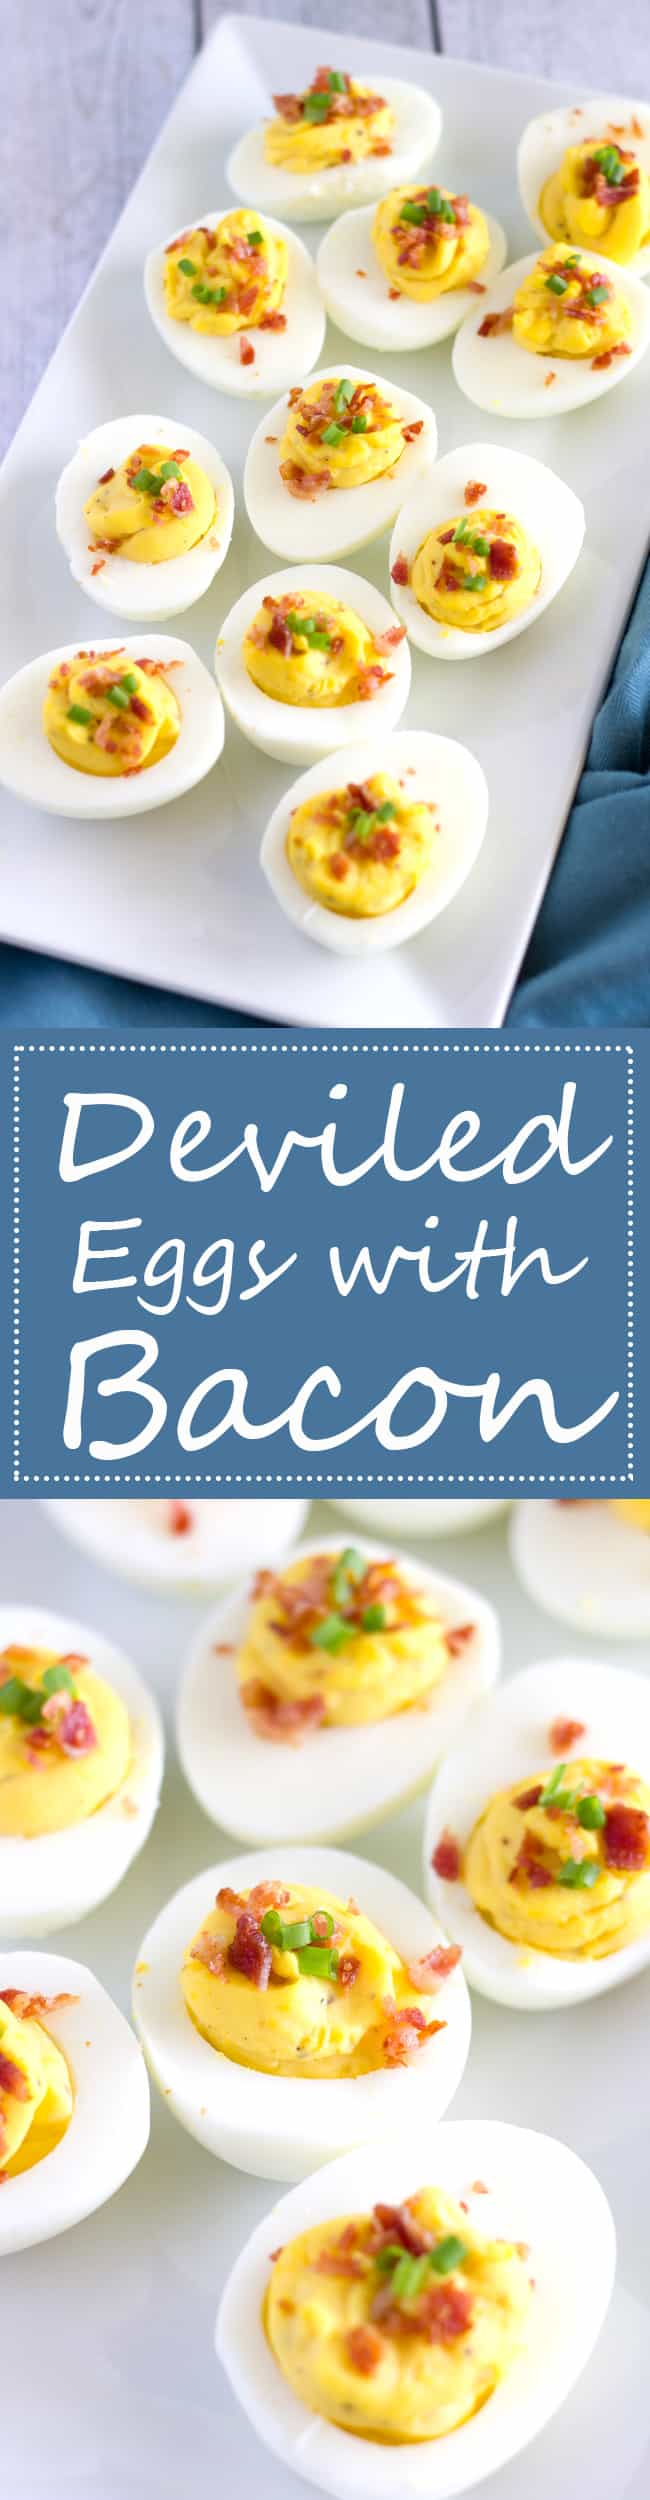 This recipe for Classic Deviled Eggs are made even better with crumbled bacon. Perfect for Easter Brunch!